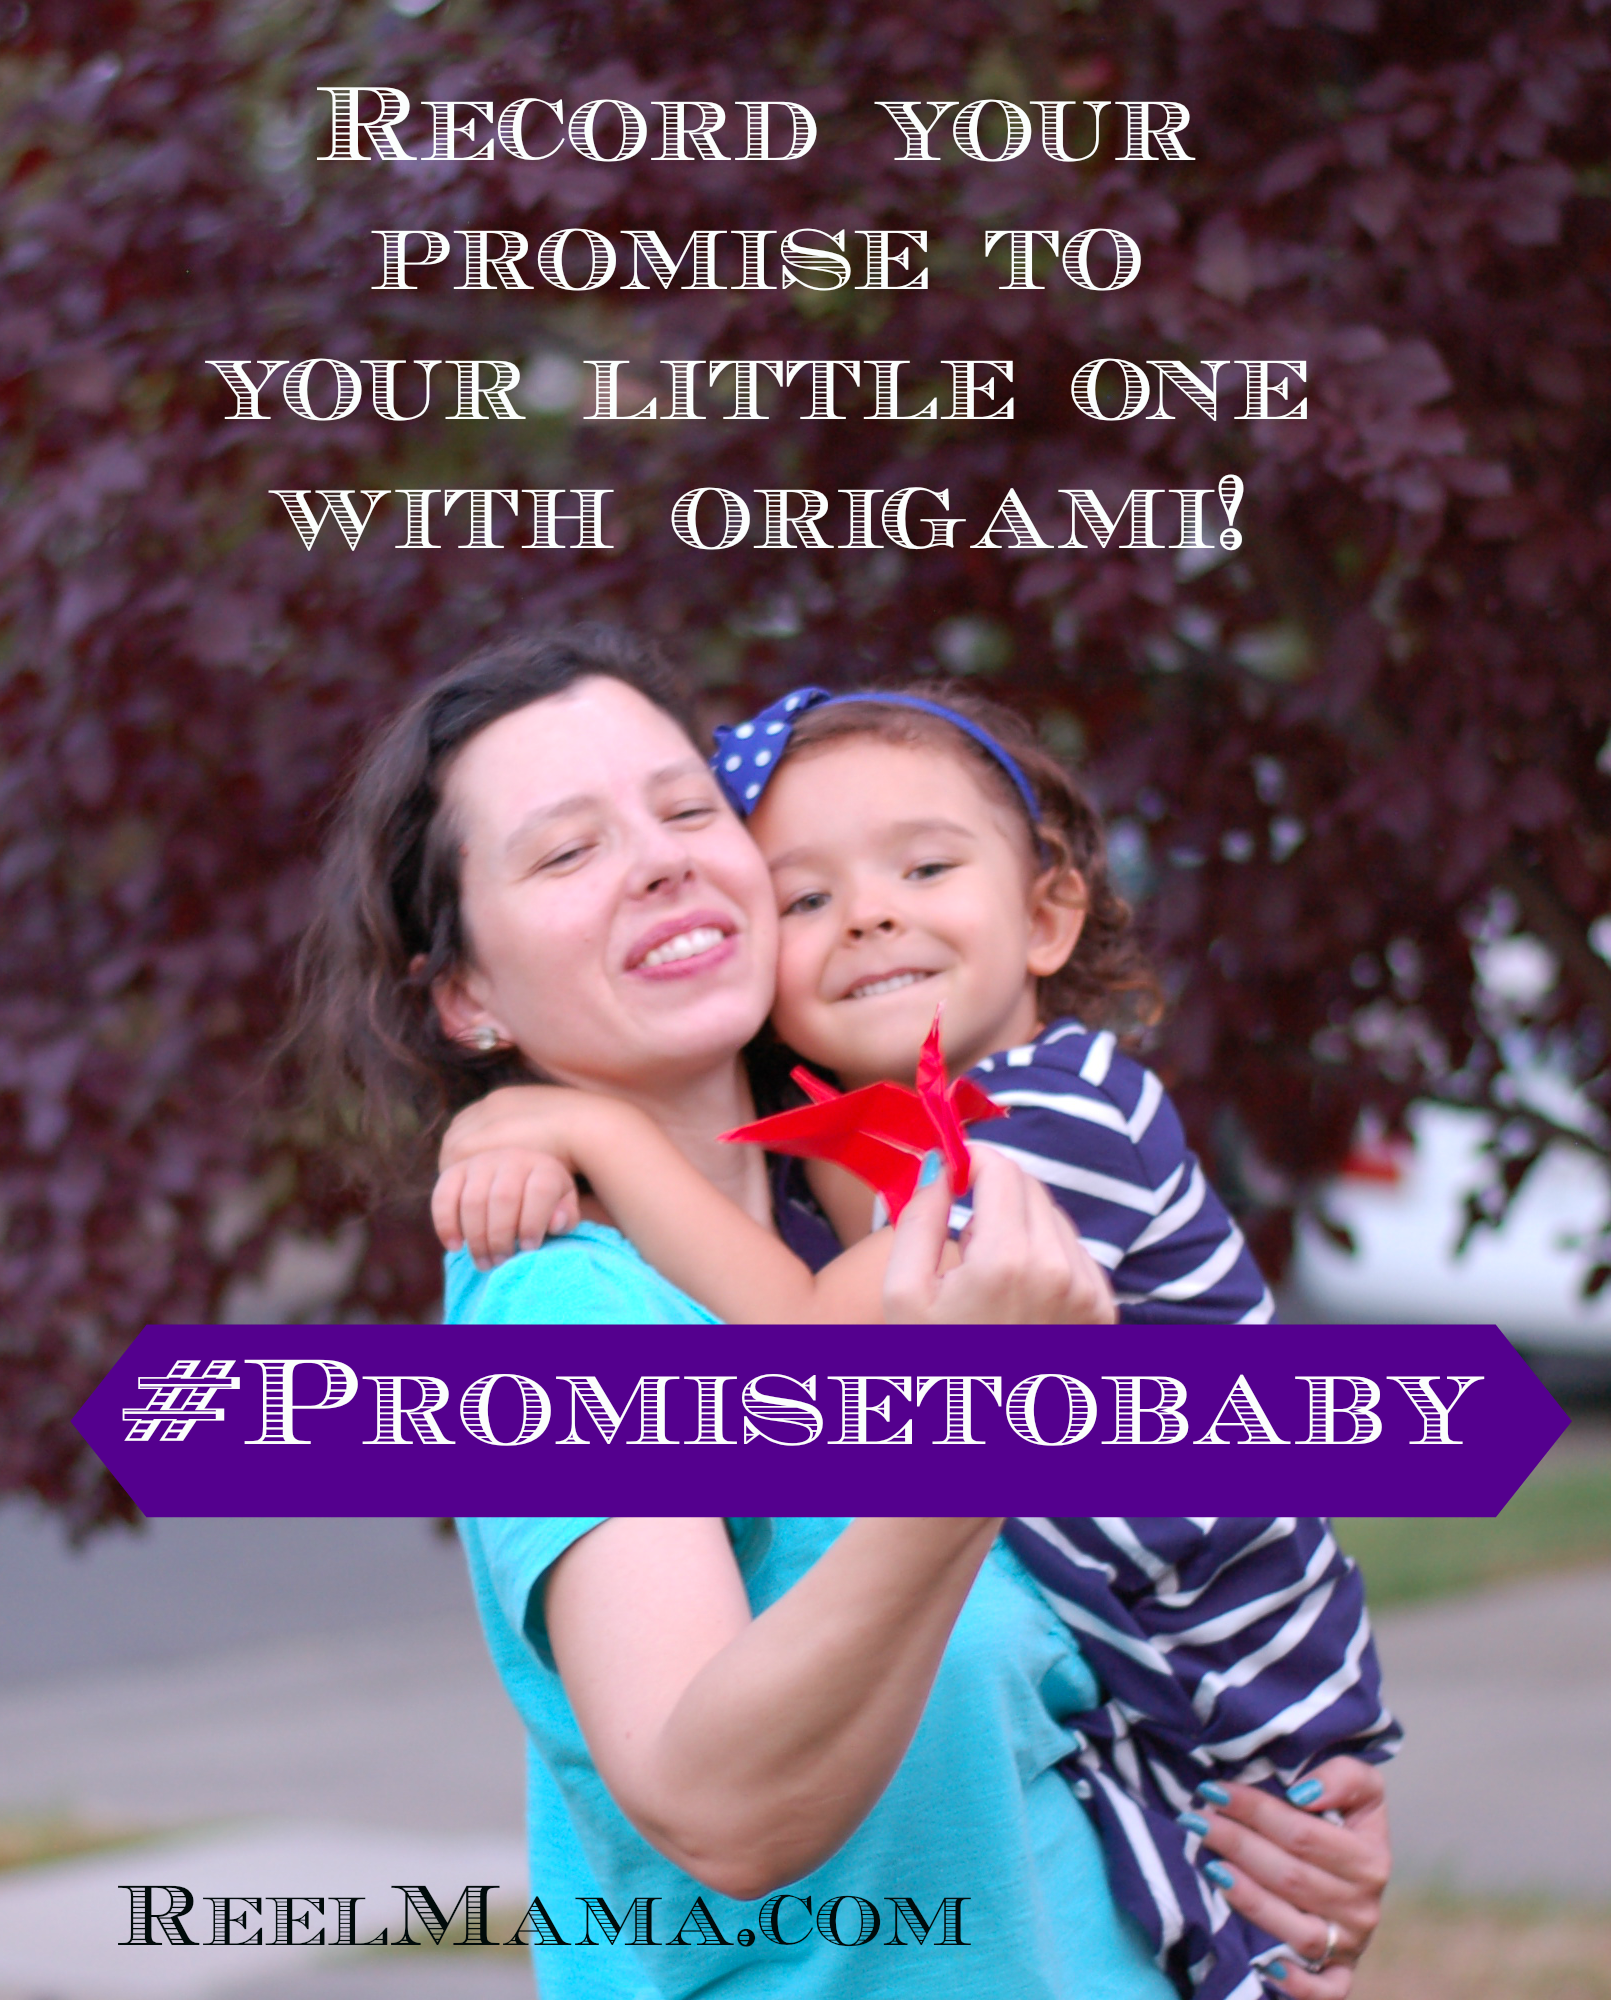 Origami keepsake and letter to my daughter with my promise to her #PromiseToBaby